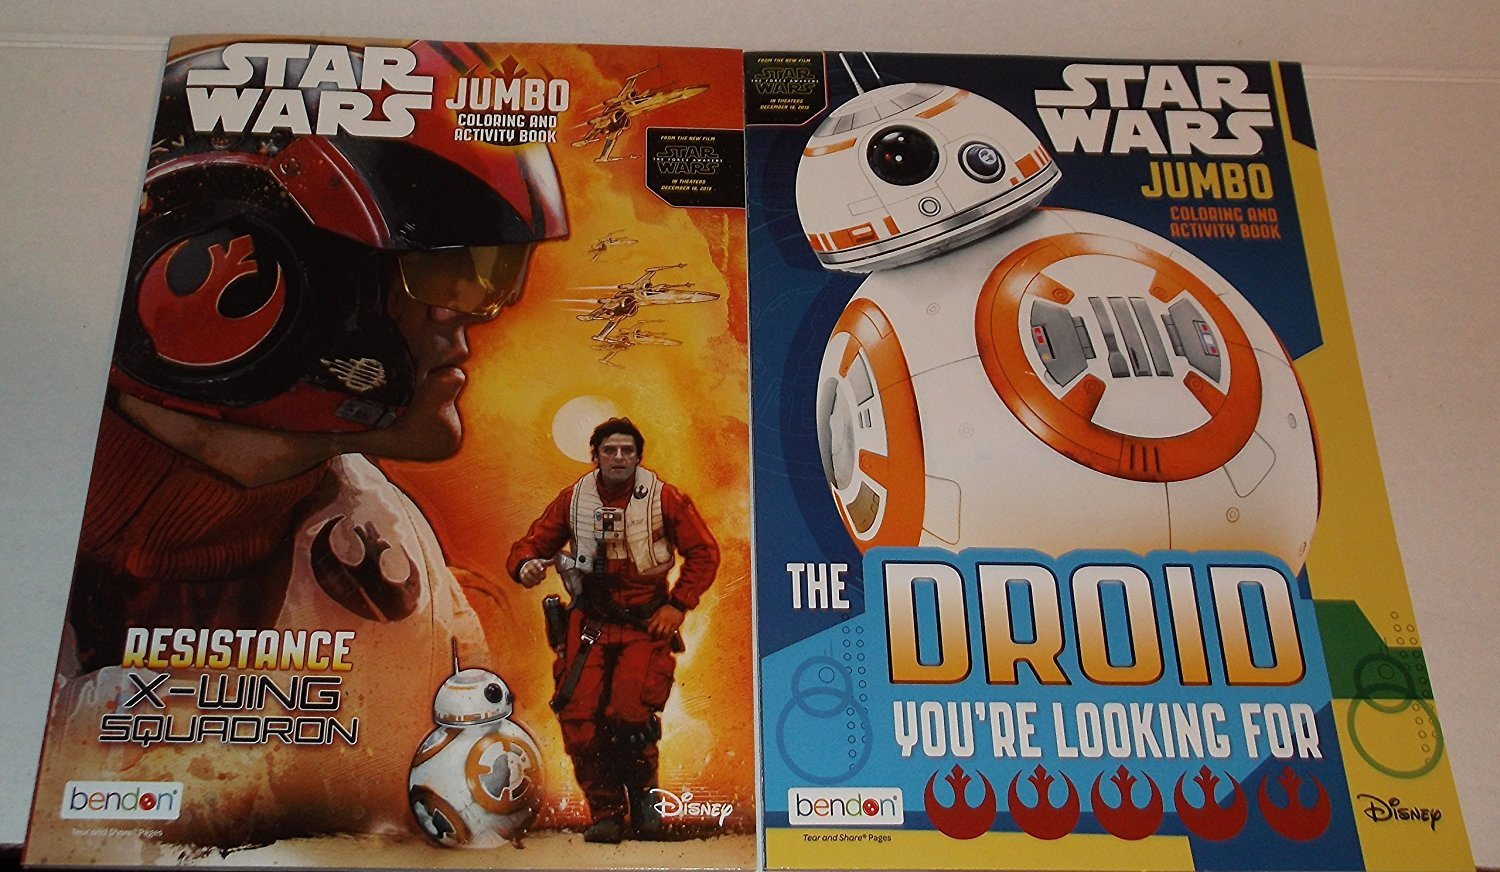 Star Wars Coloring and Activity Book - The Droid You're Looking For & Resistance X-Wing Squadron